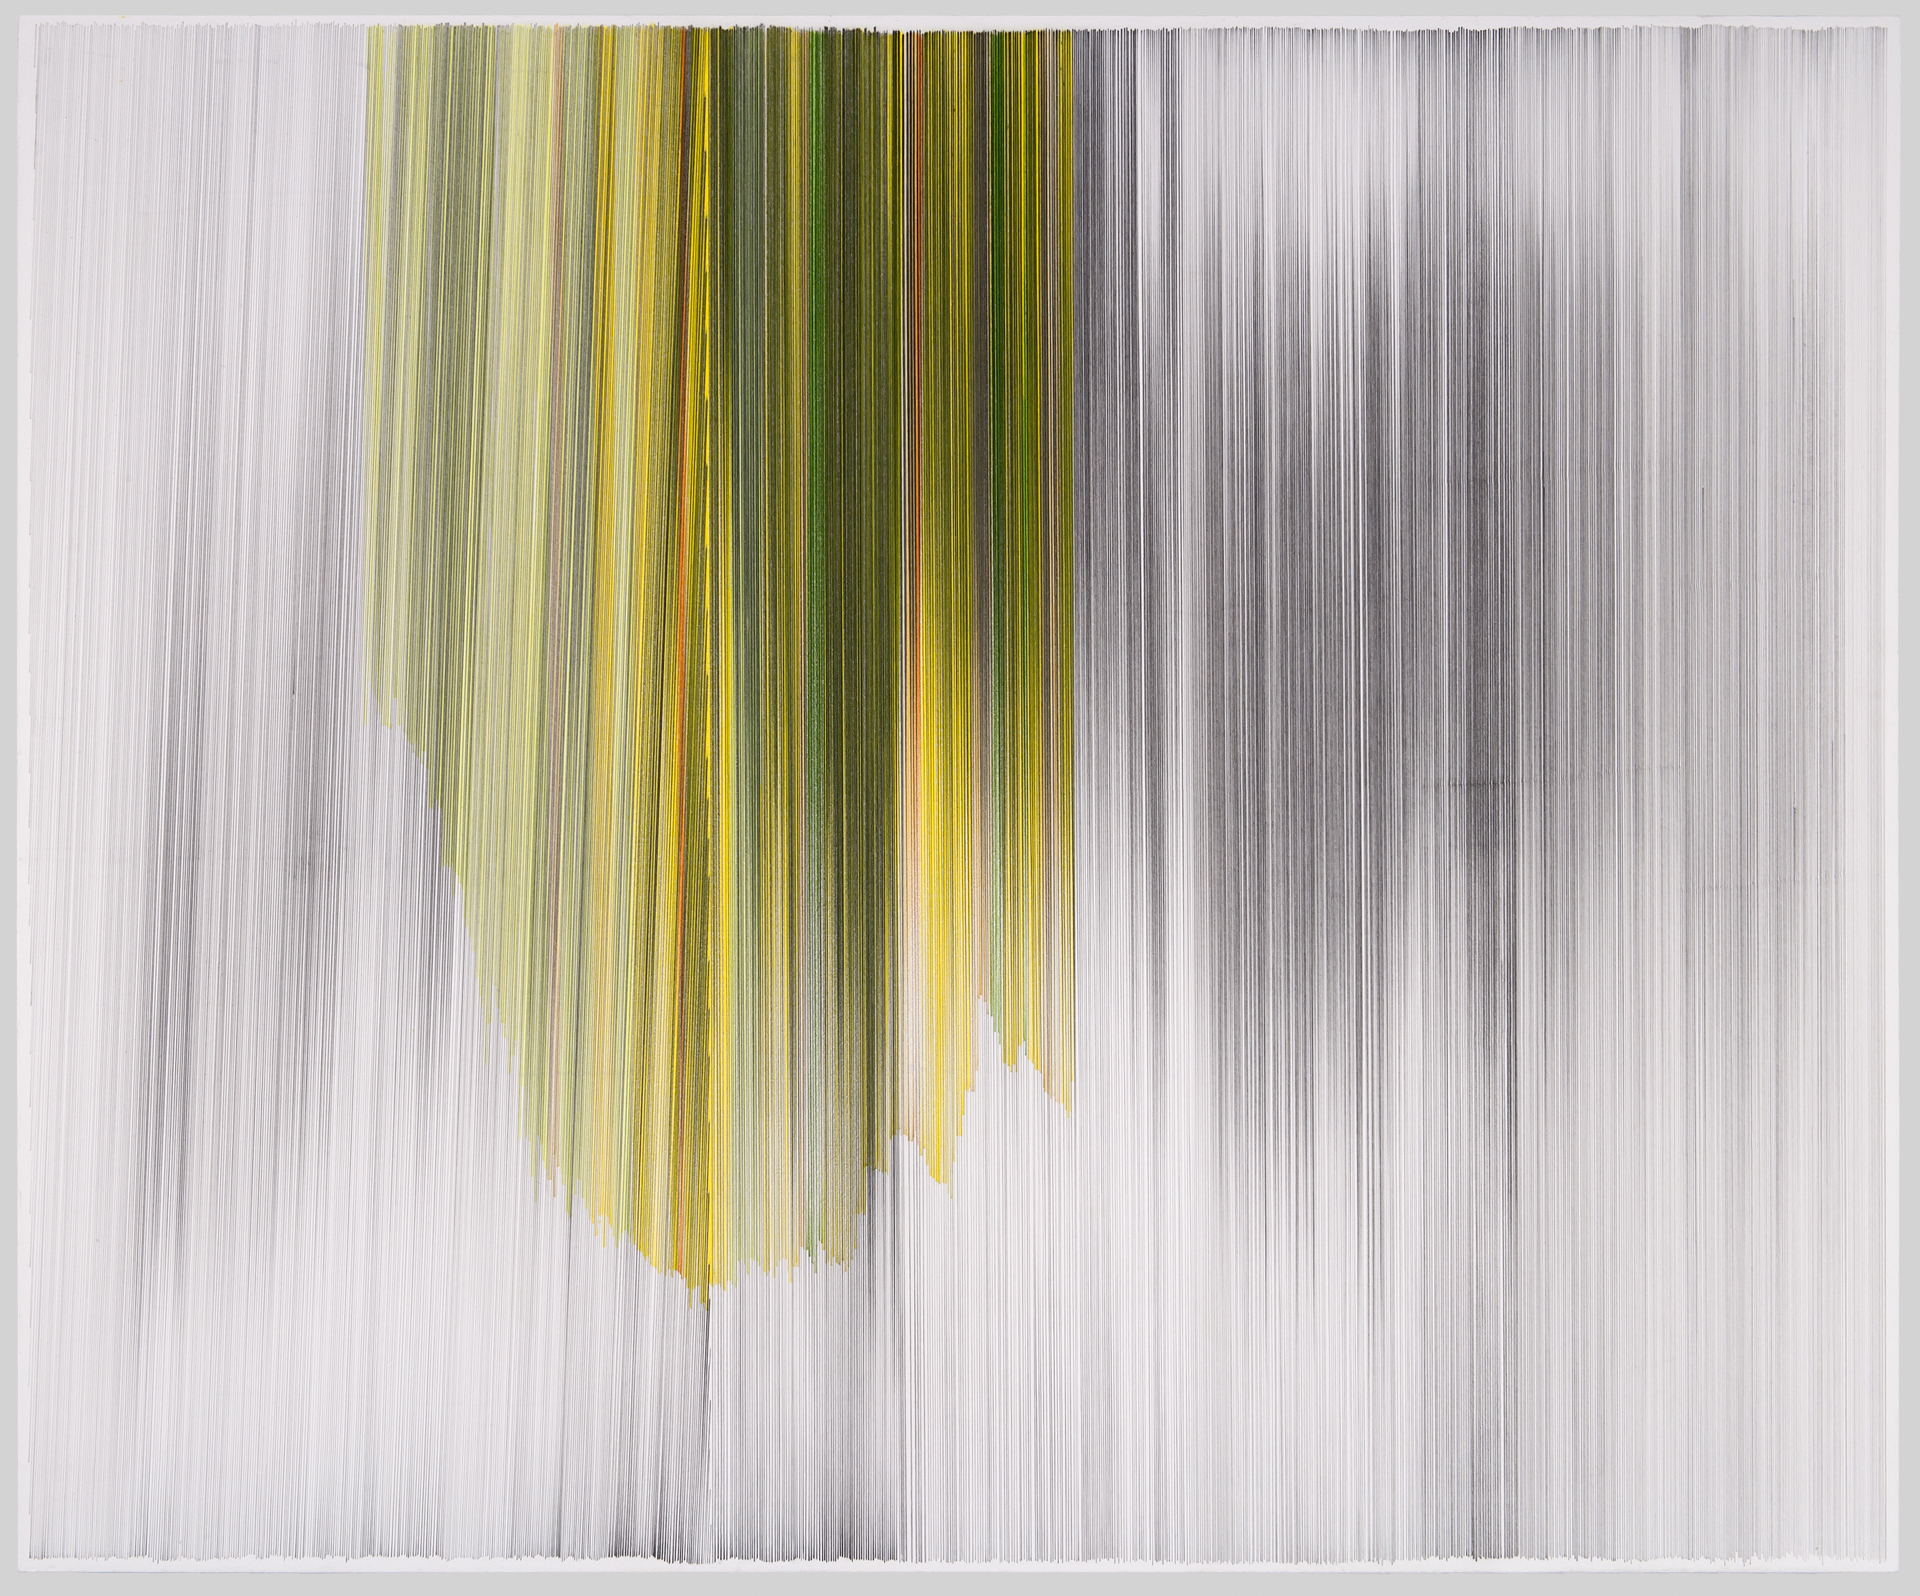 motion drawing 18 yellow  2010 graphite & colored pencil on cotton mat board 34 by 28 inches